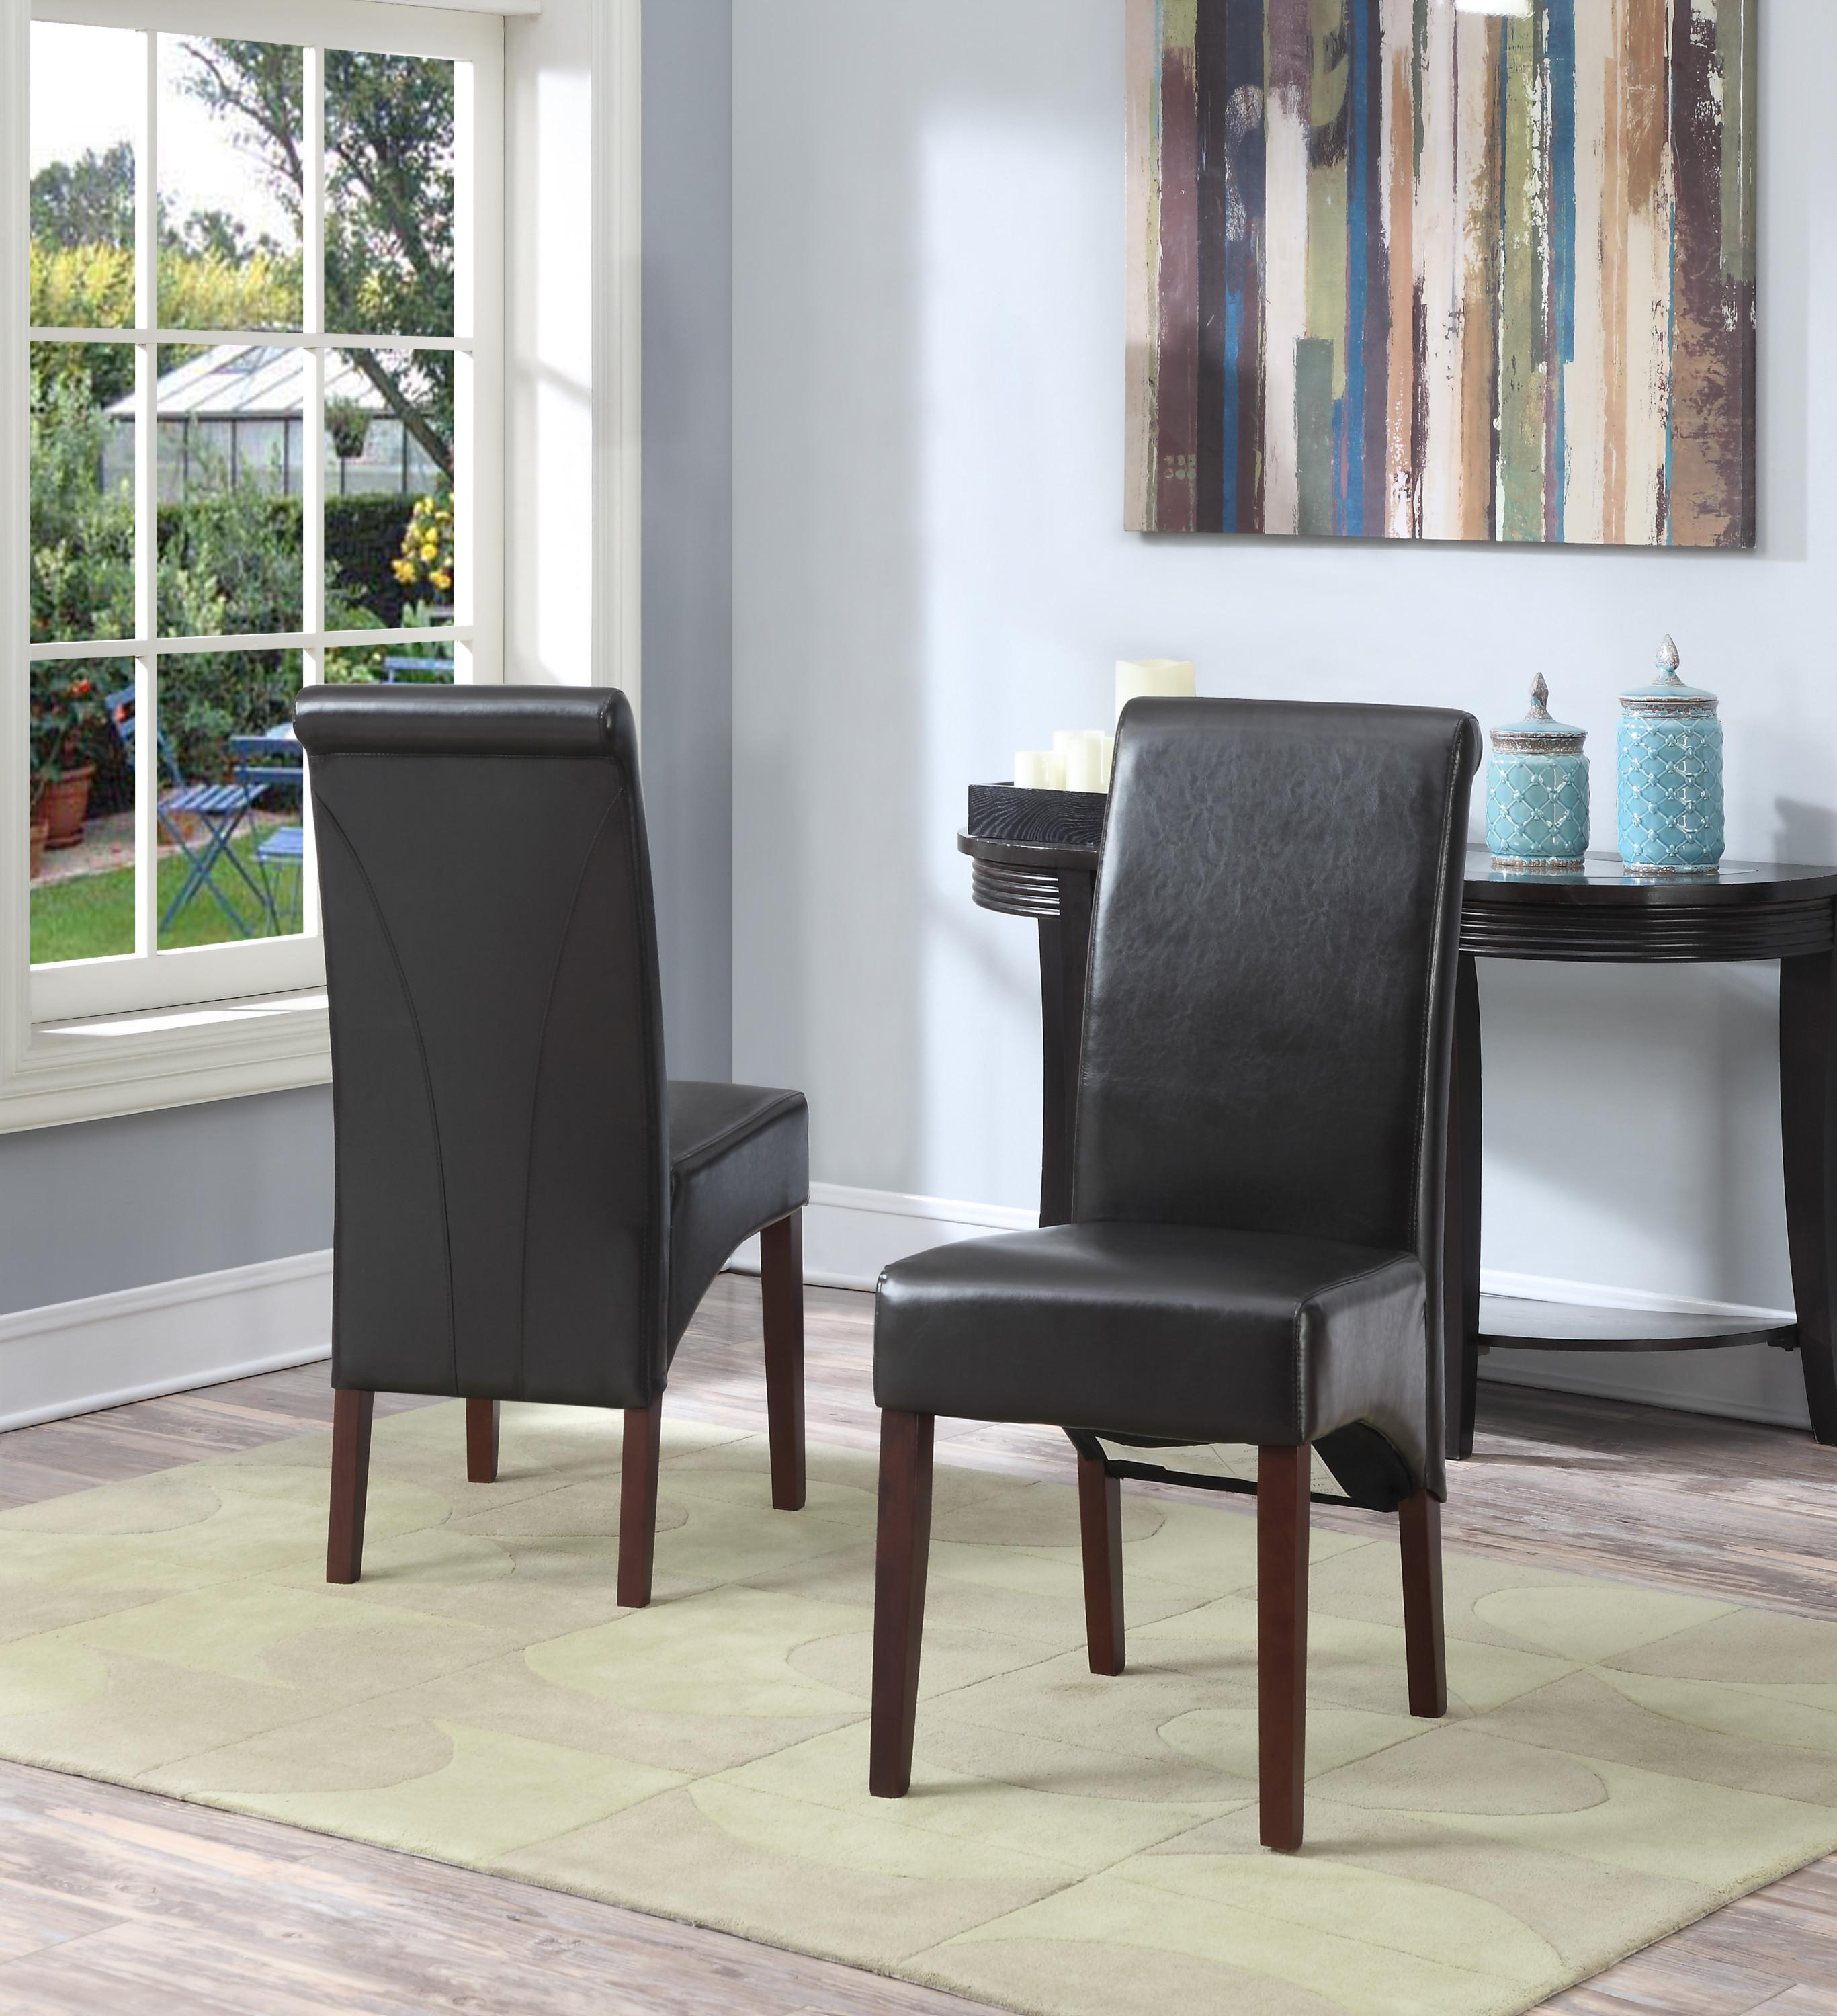 Amazoncom Simpli Home Avalon Faux Leather Deluxe Parson Chairs